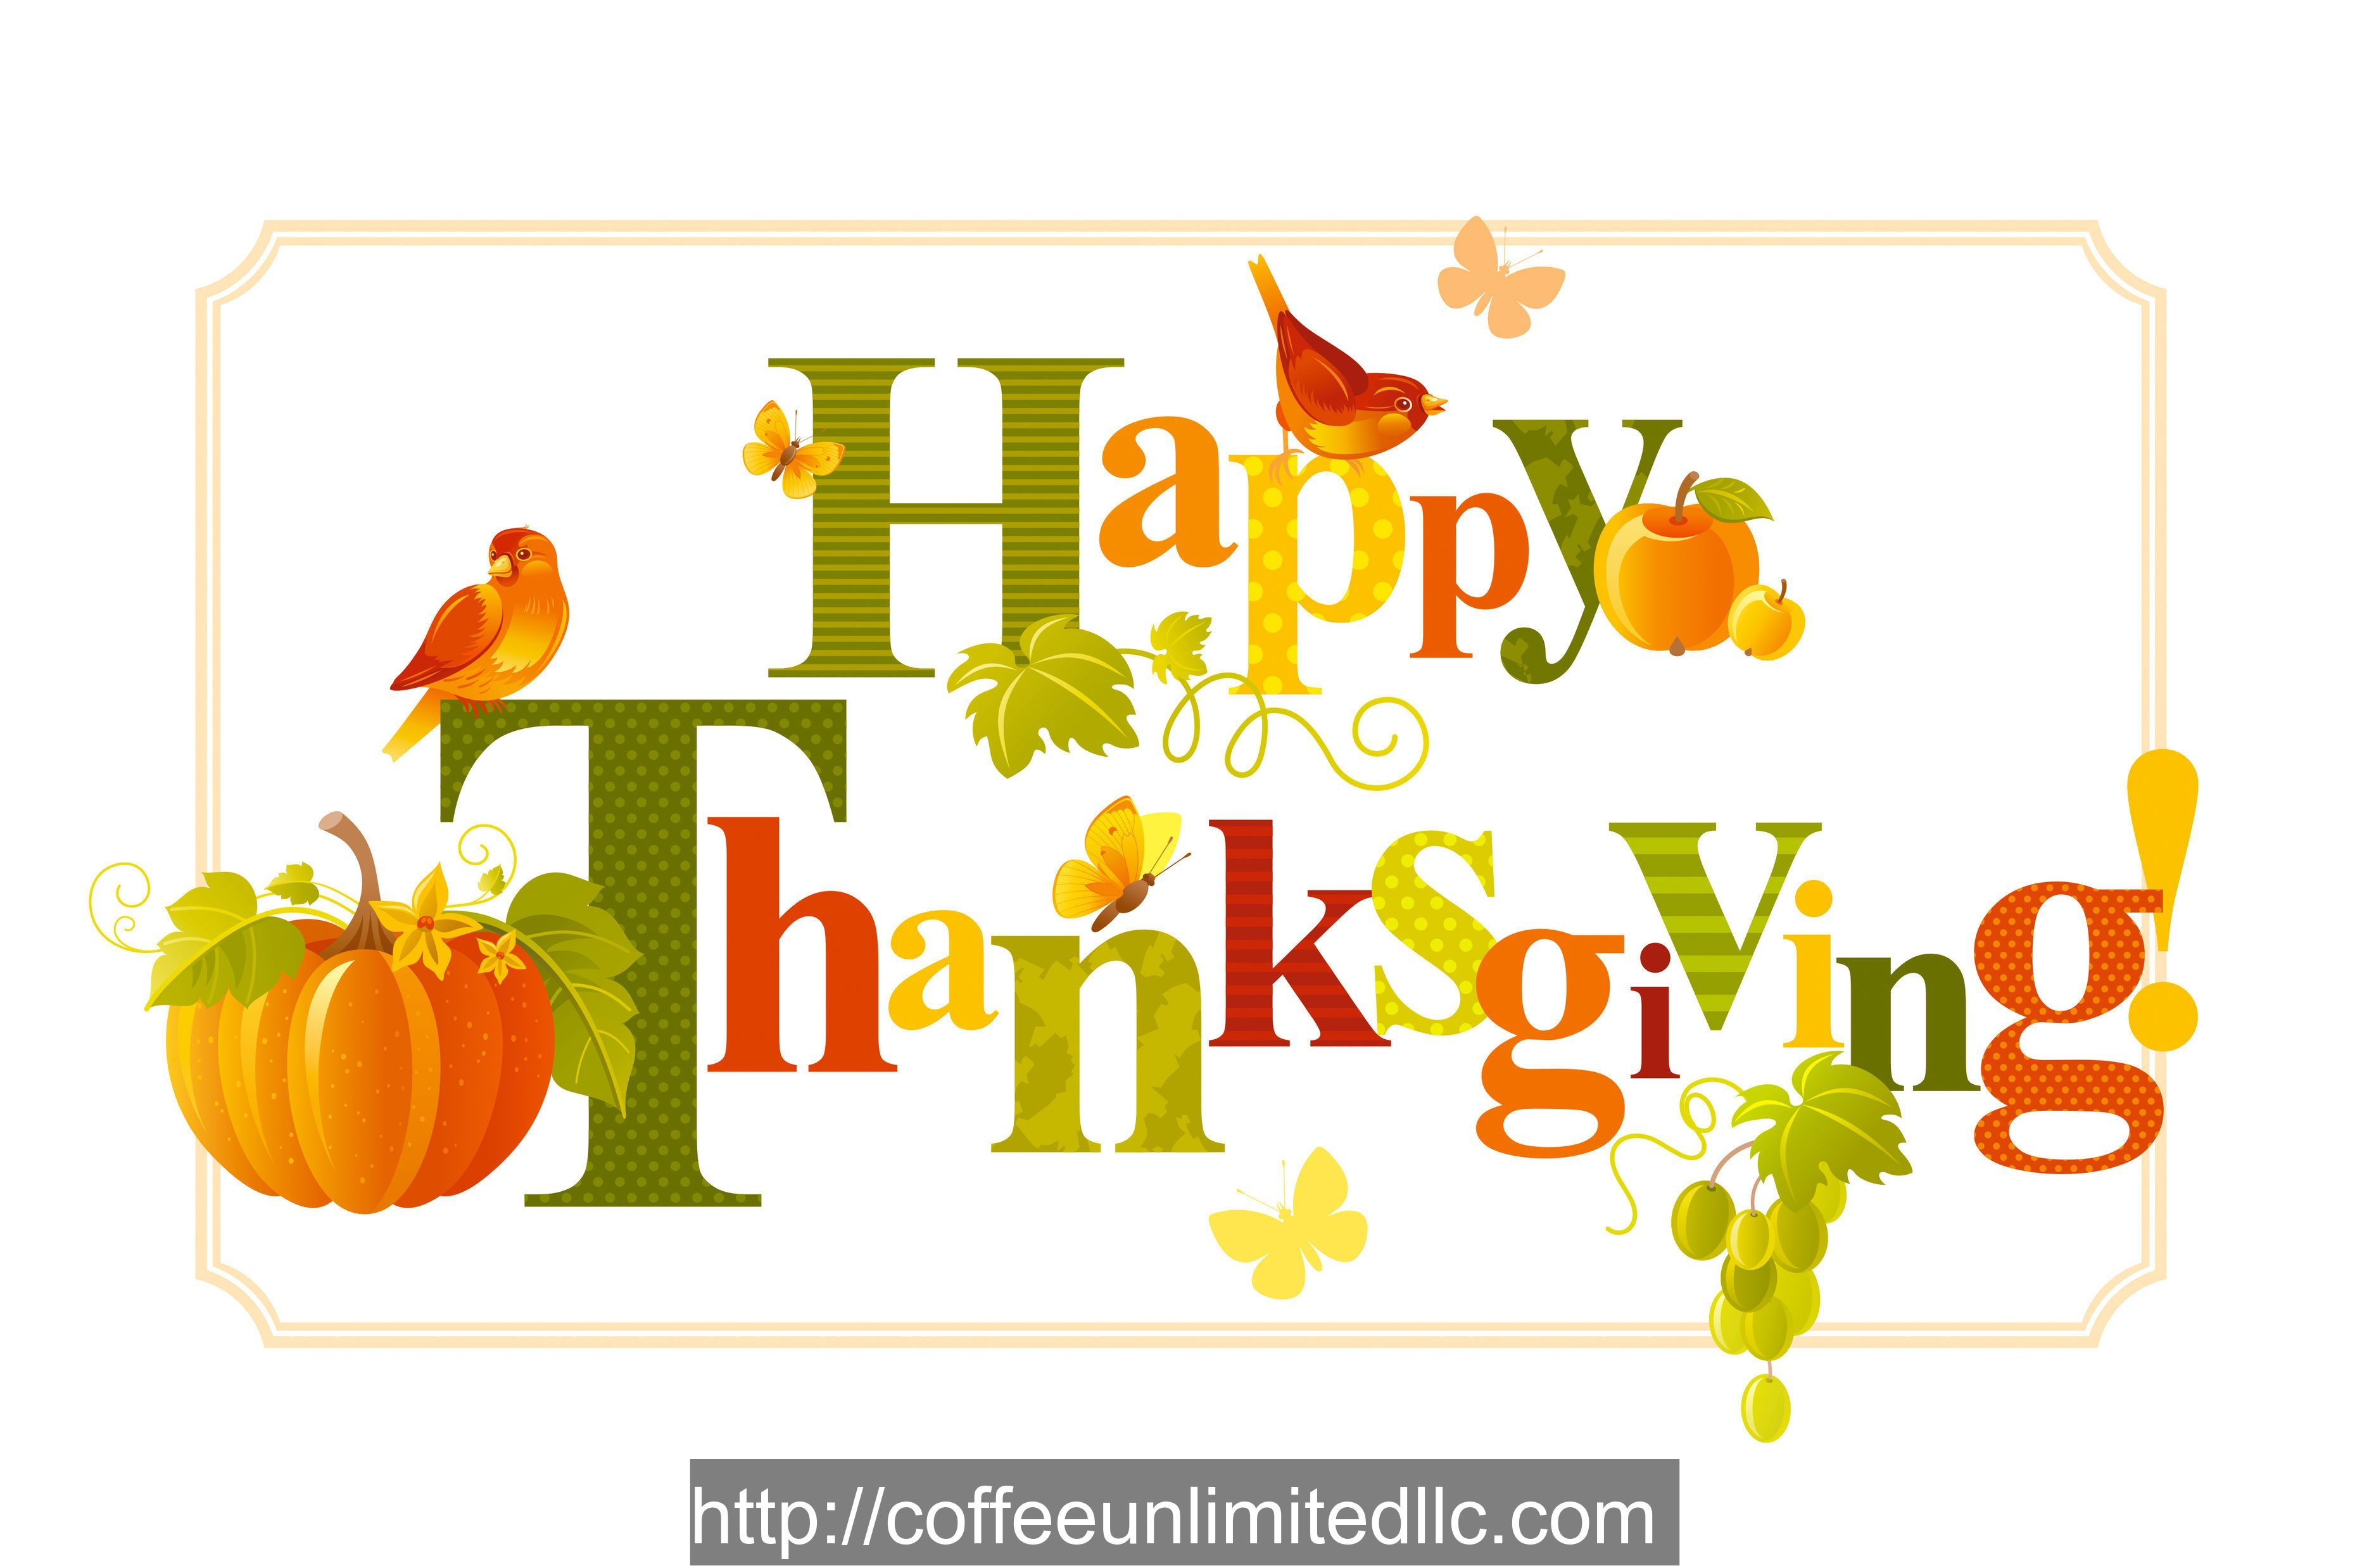 Happy Thanksgiving!.